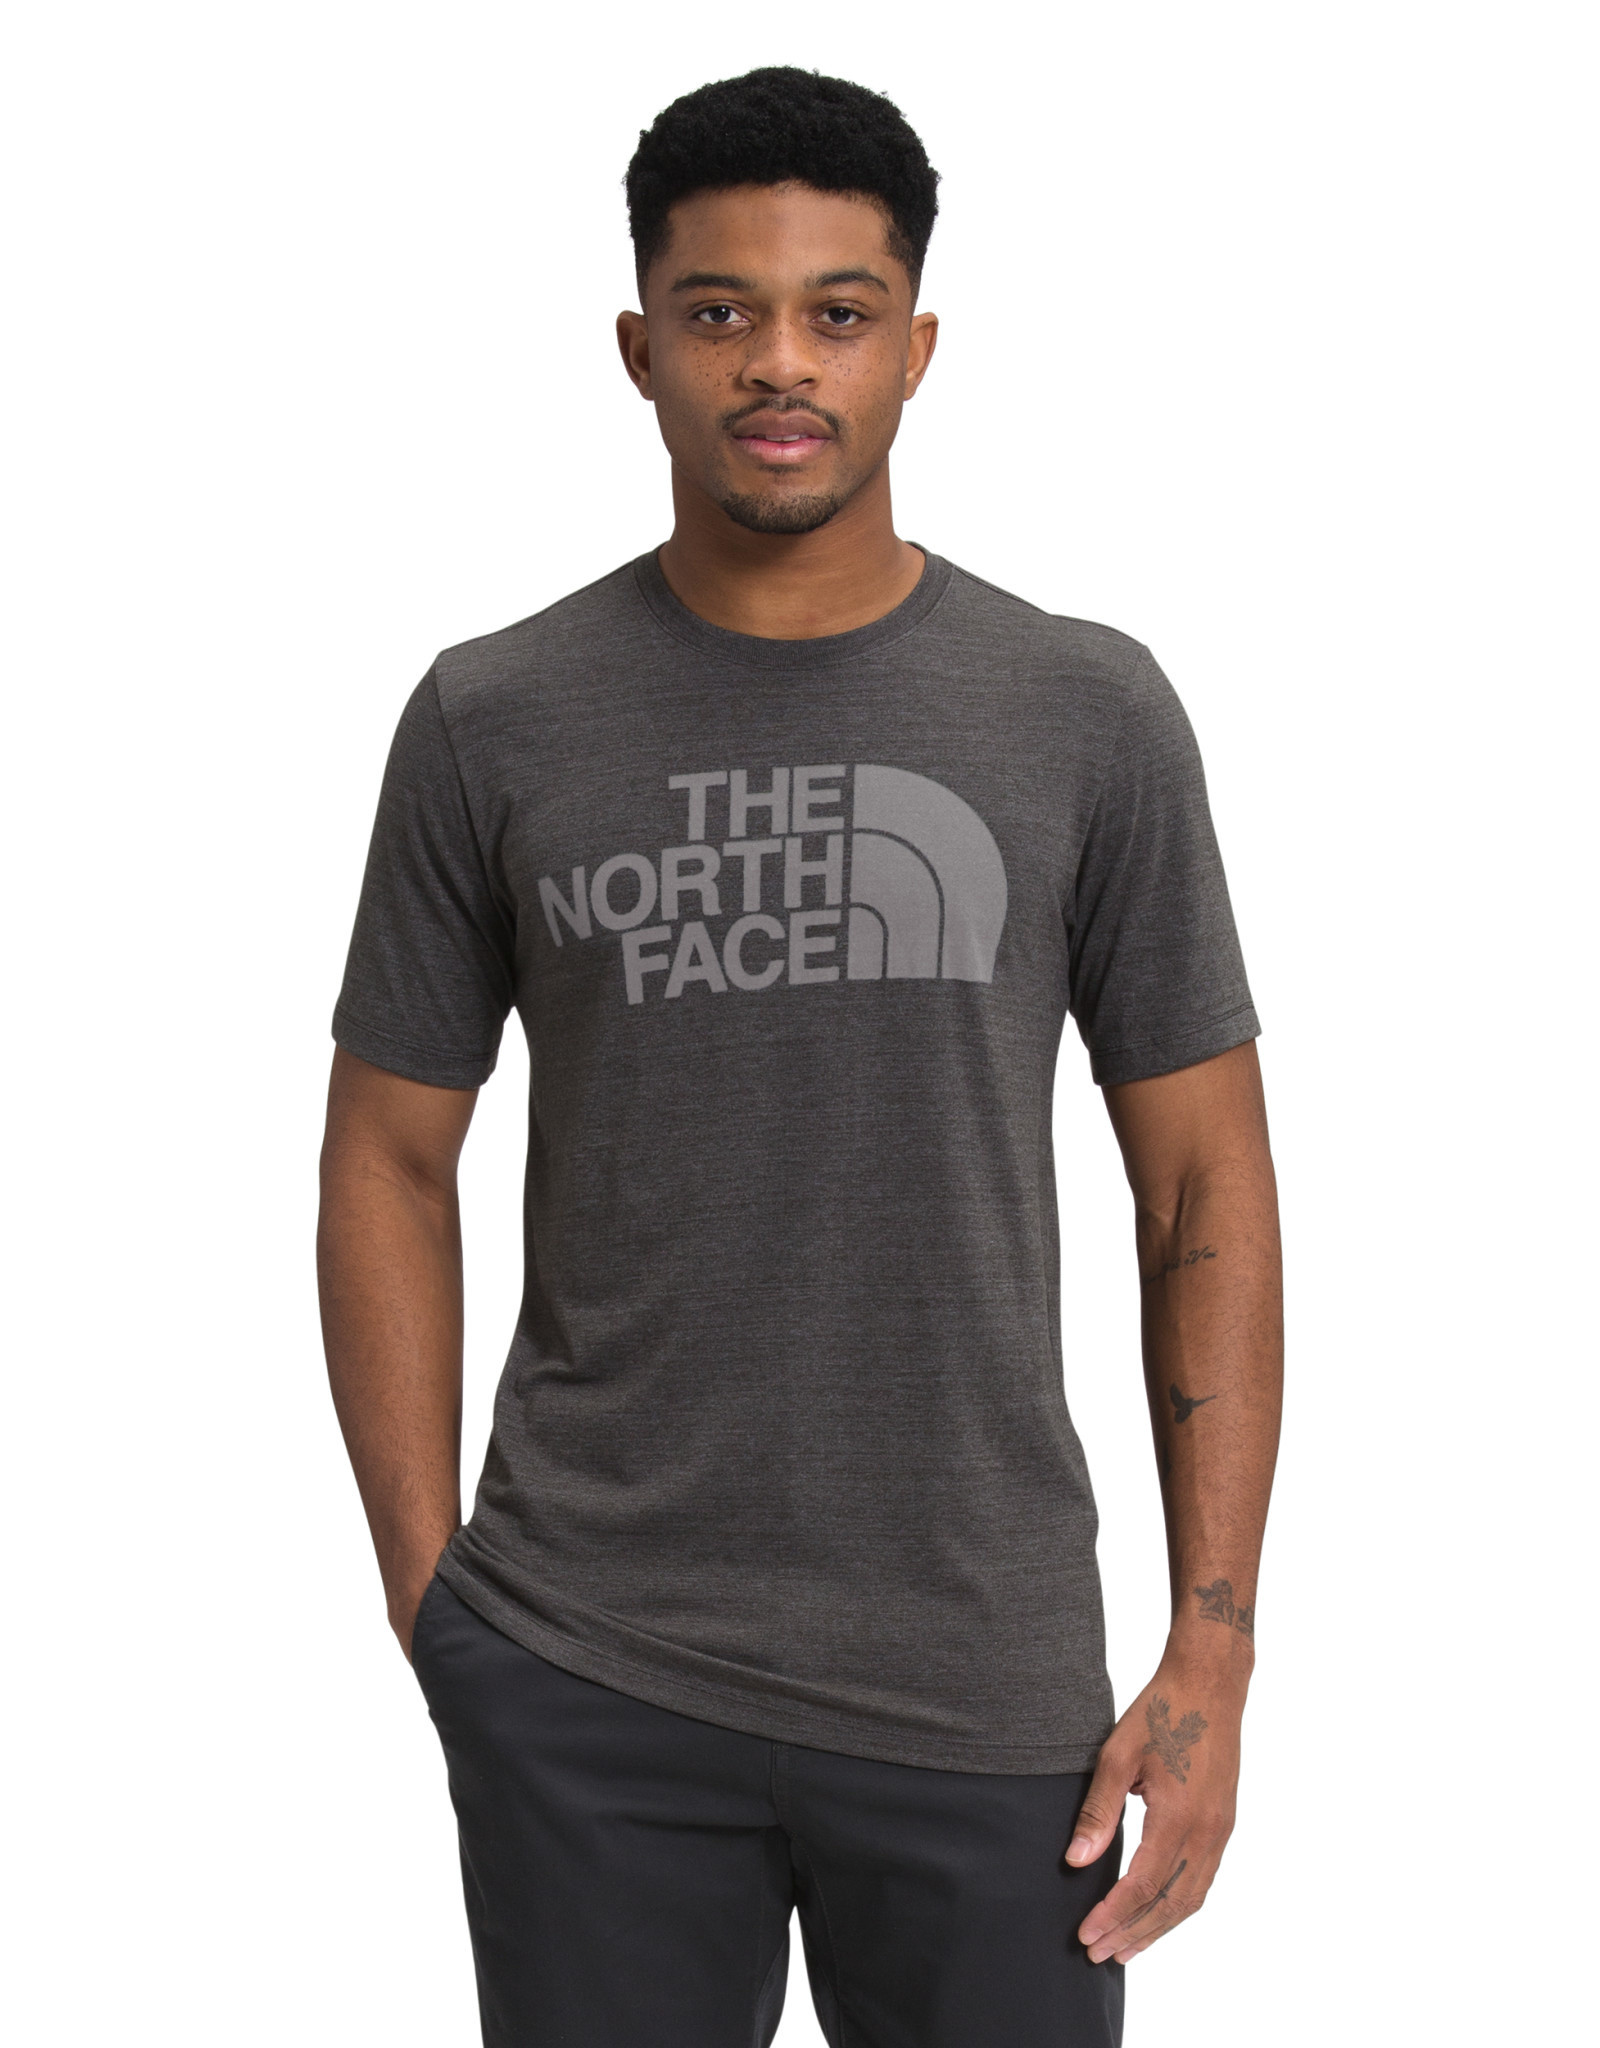 The North Face The North Face Men's S/S Half Dome Tri-Blend Tee -S2021